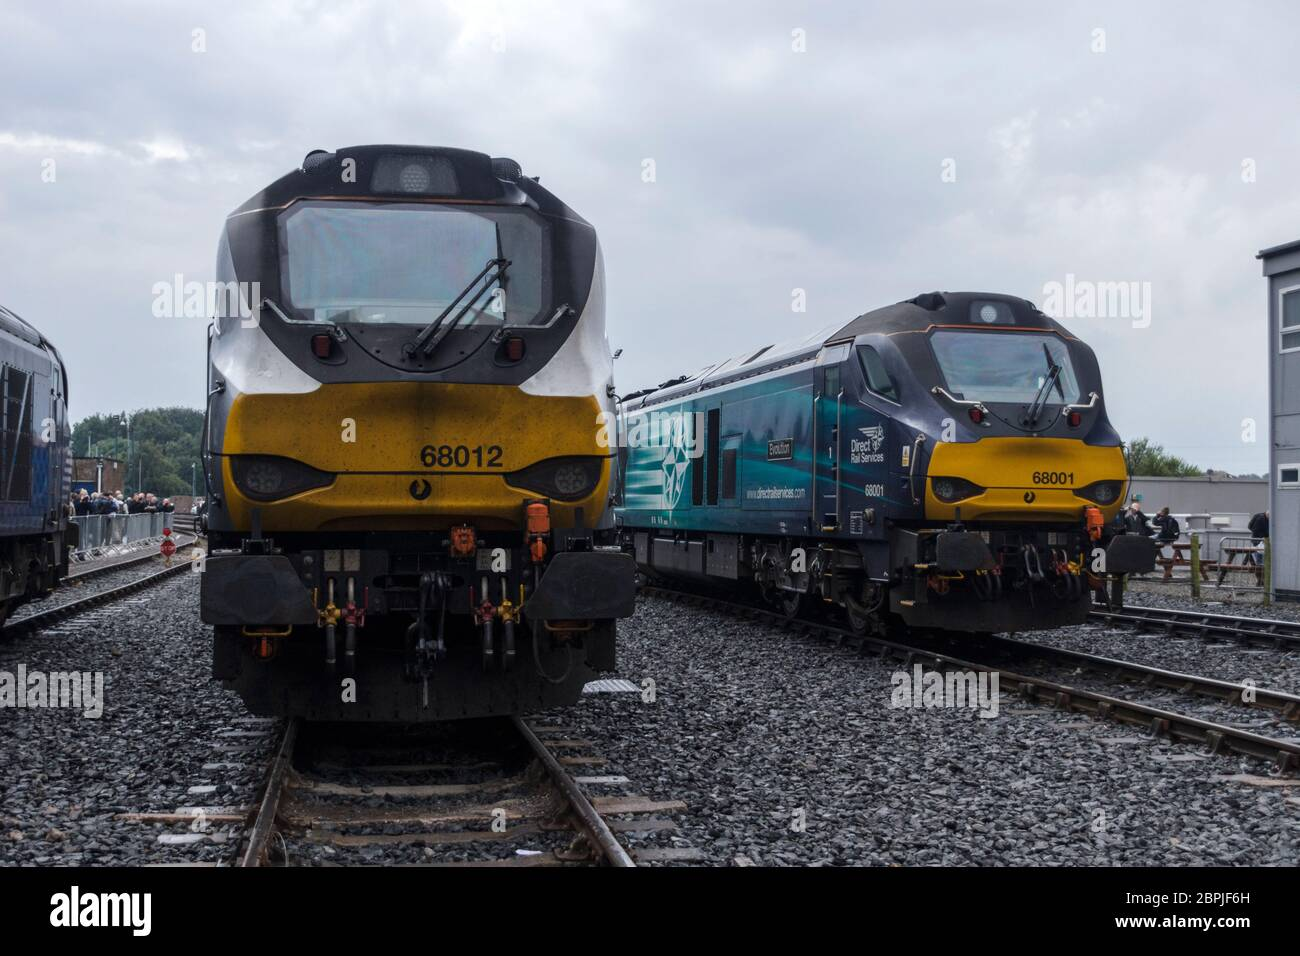 68012 stabled with 68001 at the Direct Rail Services Open Day at Carlisle in 2017. Stock Photo